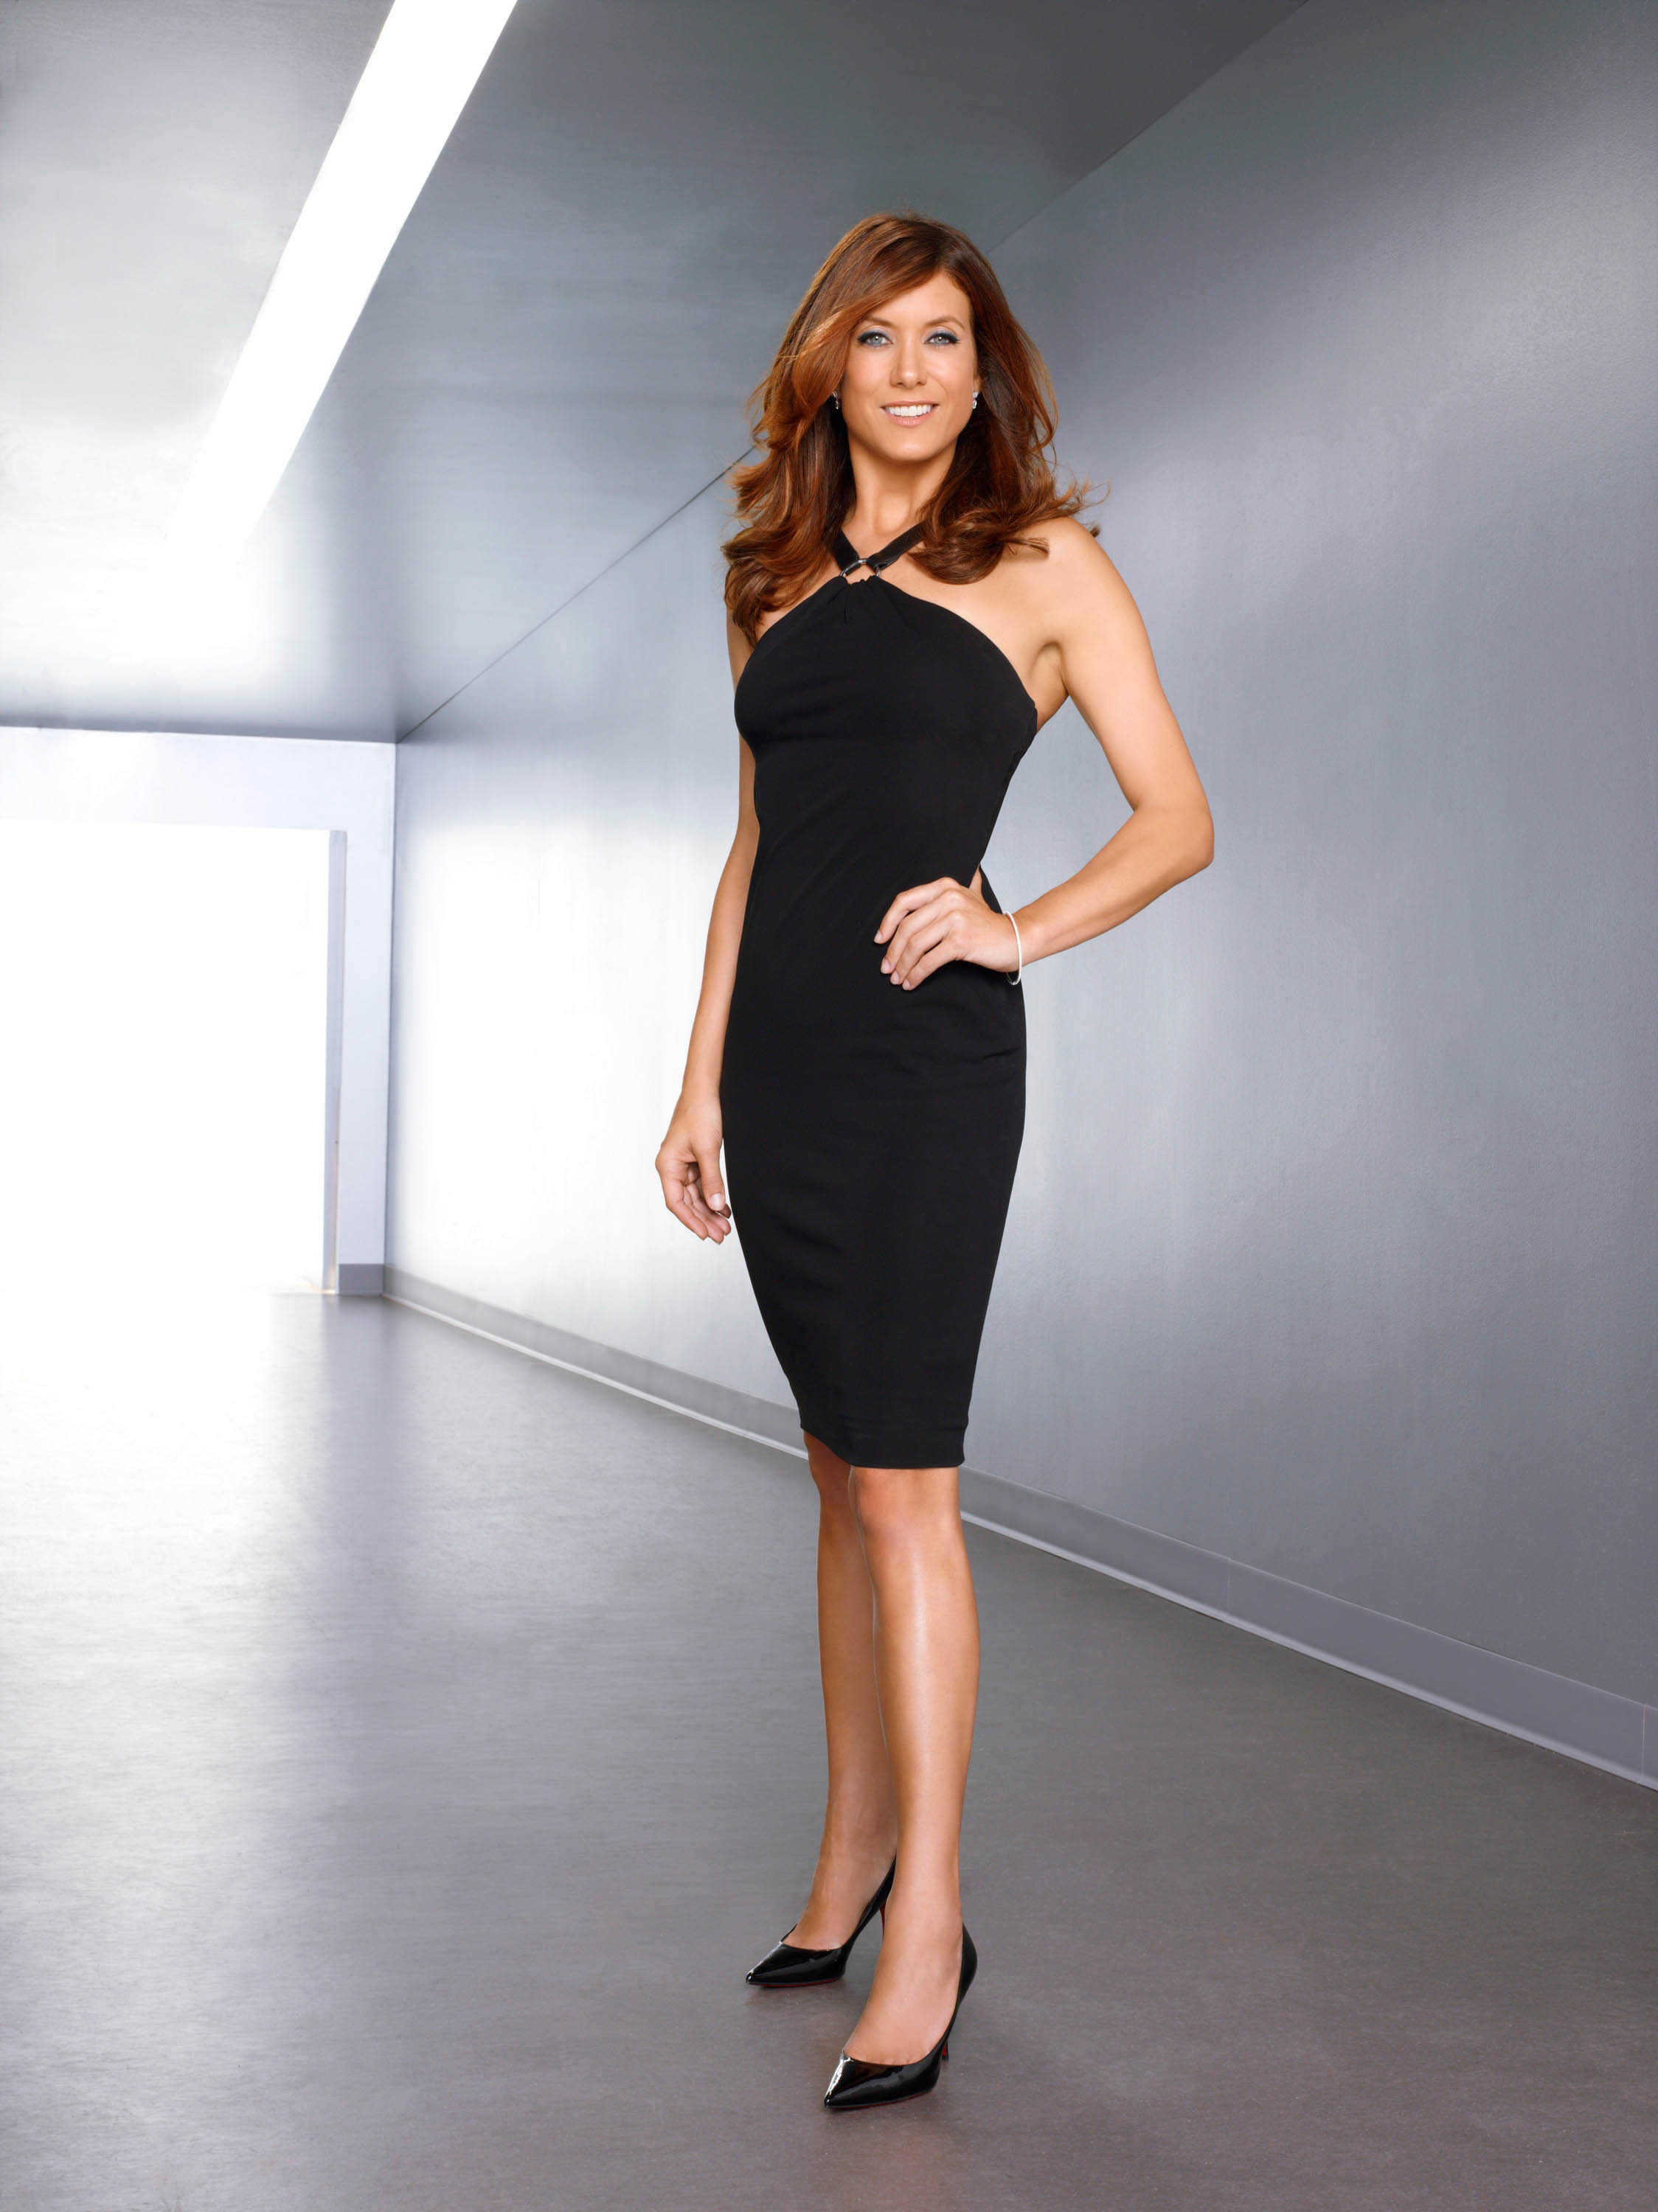 2248x3000 - Kate Walsh Wallpapers 26